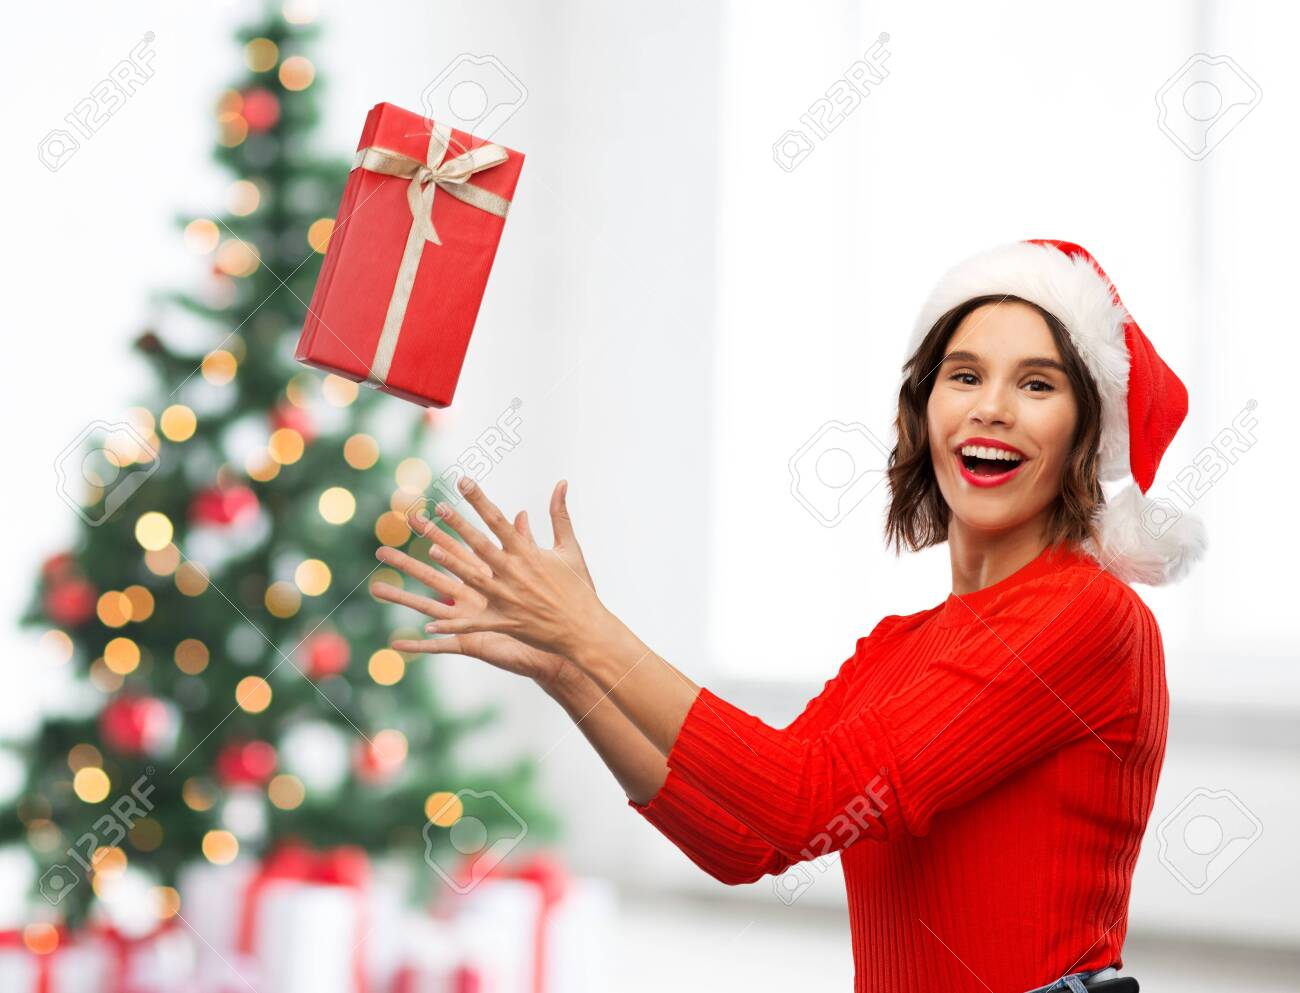 greetings and winter holidays concept - happy smiling young woman in santa helper hat catching red gift box over christmas tree lights background - 133269939